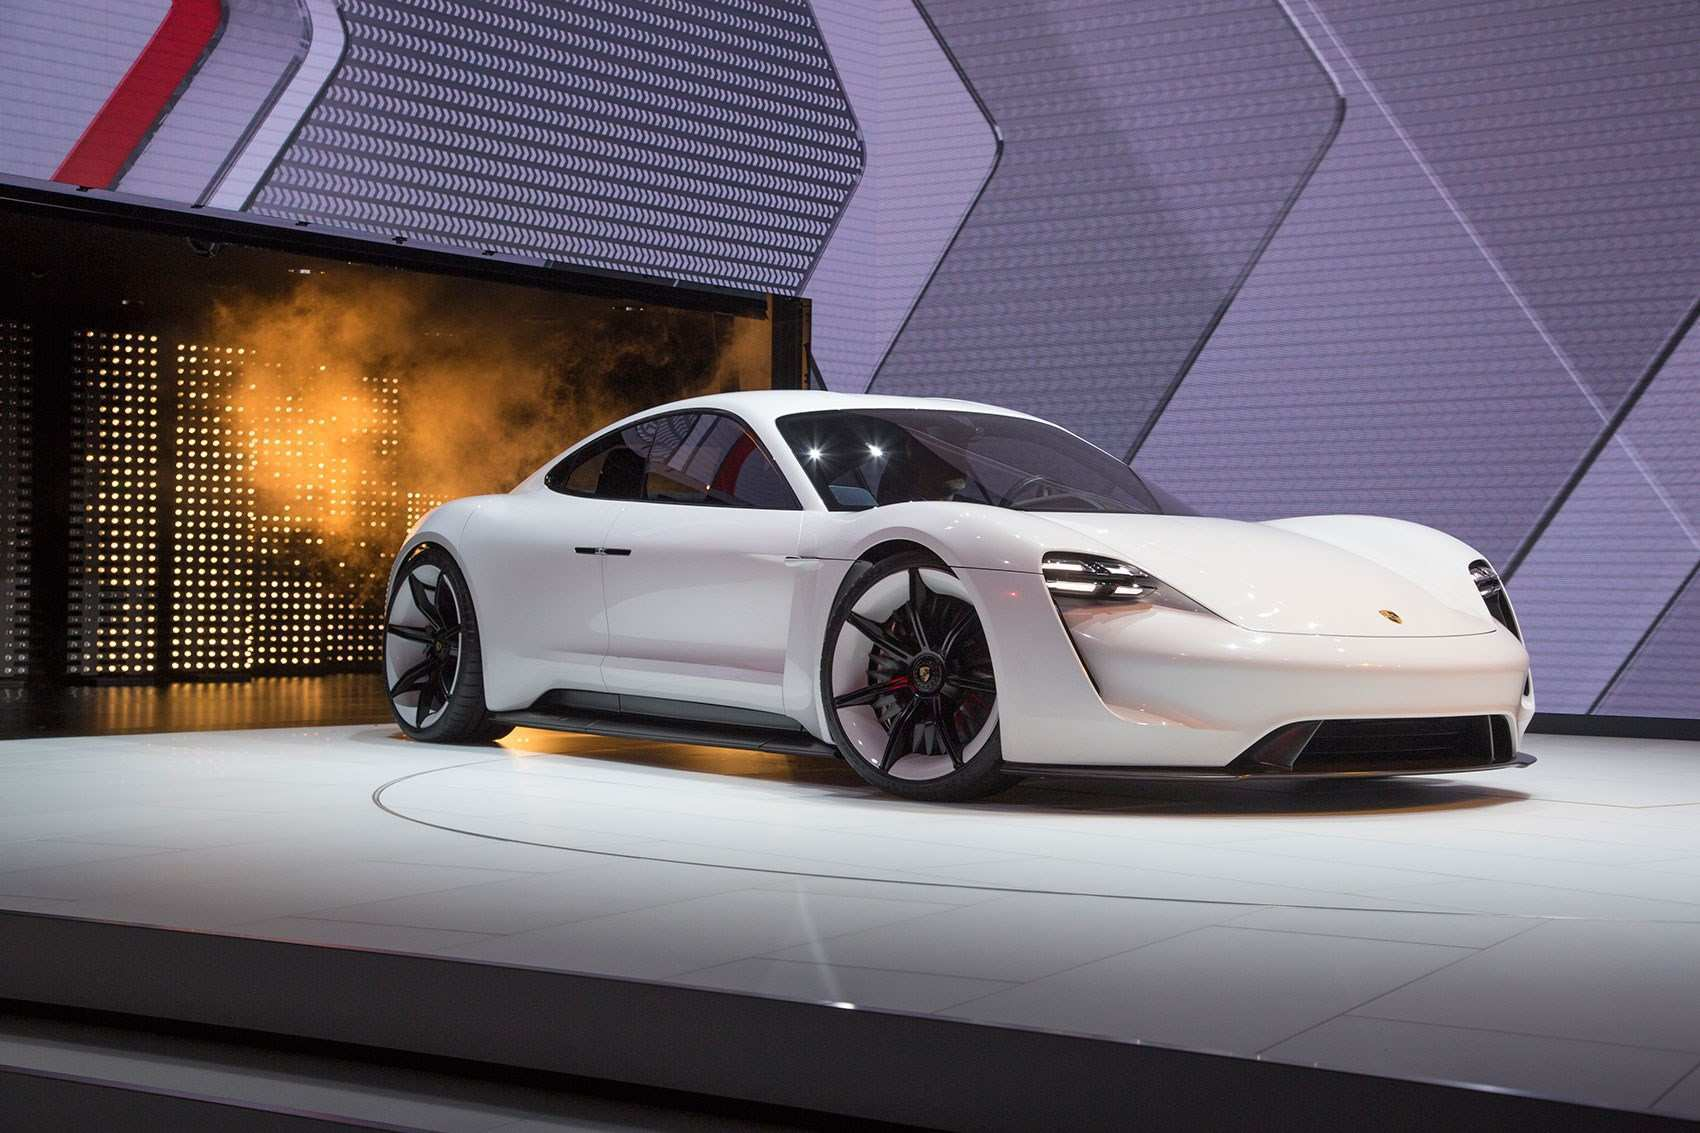 93 New 2019 Porsche Electric Car Style by 2019 Porsche Electric Car